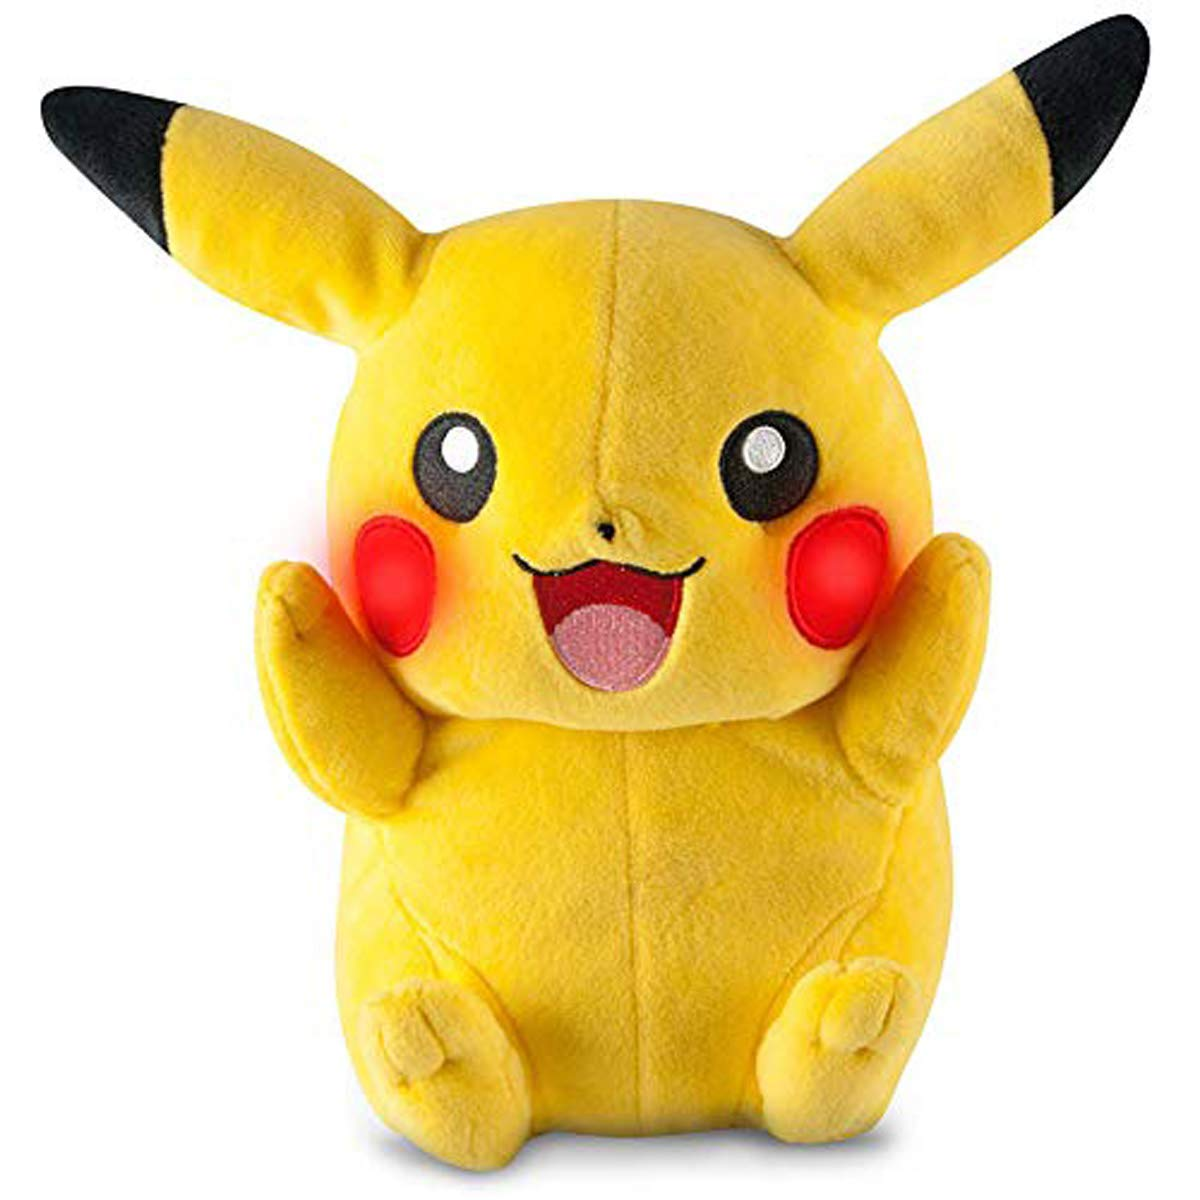 """Pokemon Pikachu Plush Stuffed Animals Large Pillow Toy, 11"""" Inch, for Kids Over Age 3+"""